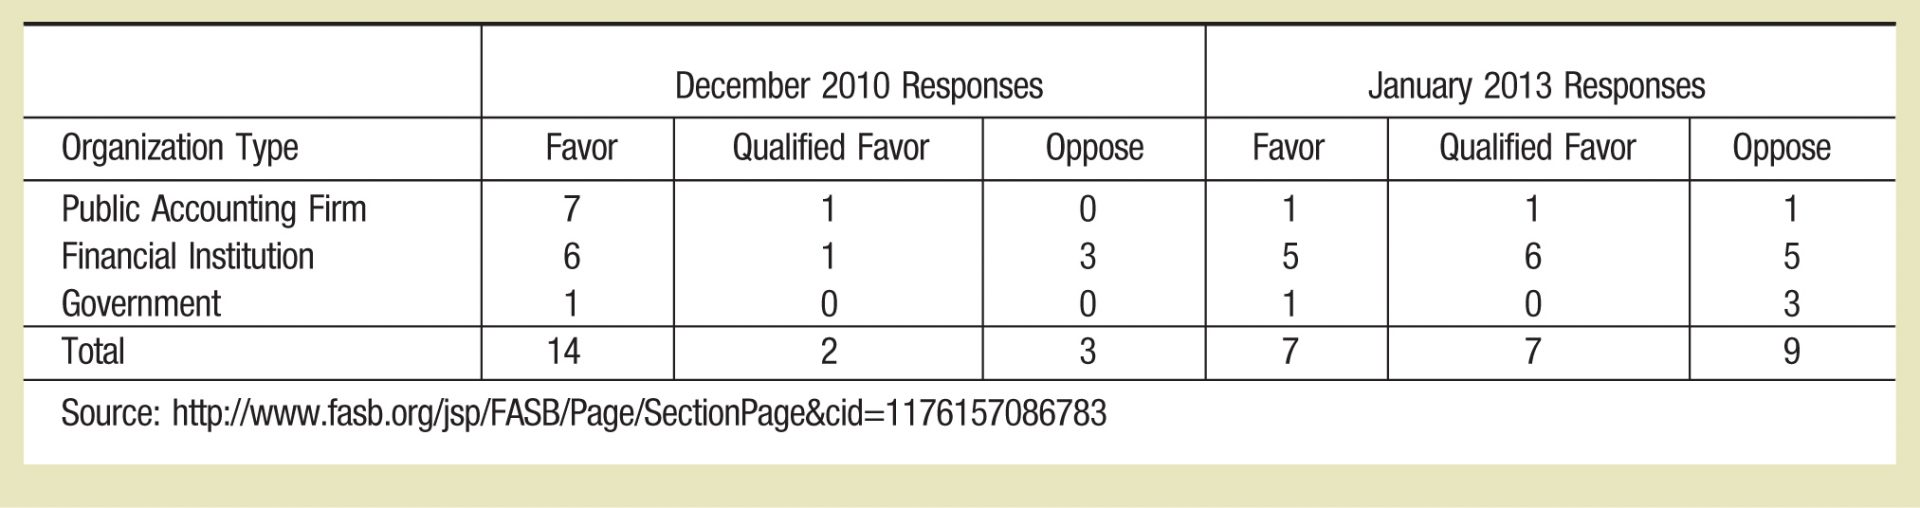 December 2010 Responses; January 2013 Responses OrganizationType; Favor; Qualified Favor; Oppose; Favor; Qualified Favor; Oppose PublicAccounting Firm; 7; 1; 0; 1; 1; 1 FinancialInstitution; 6; 1; 3; 5; 6; 5 Government;1; 0; 0; 1; 0; 3 Total;14; 2; 3; 7; 7; 9 Source:http://www.fasb.org/jsp/FASB/Page/SectionPage&cid=1176157086783